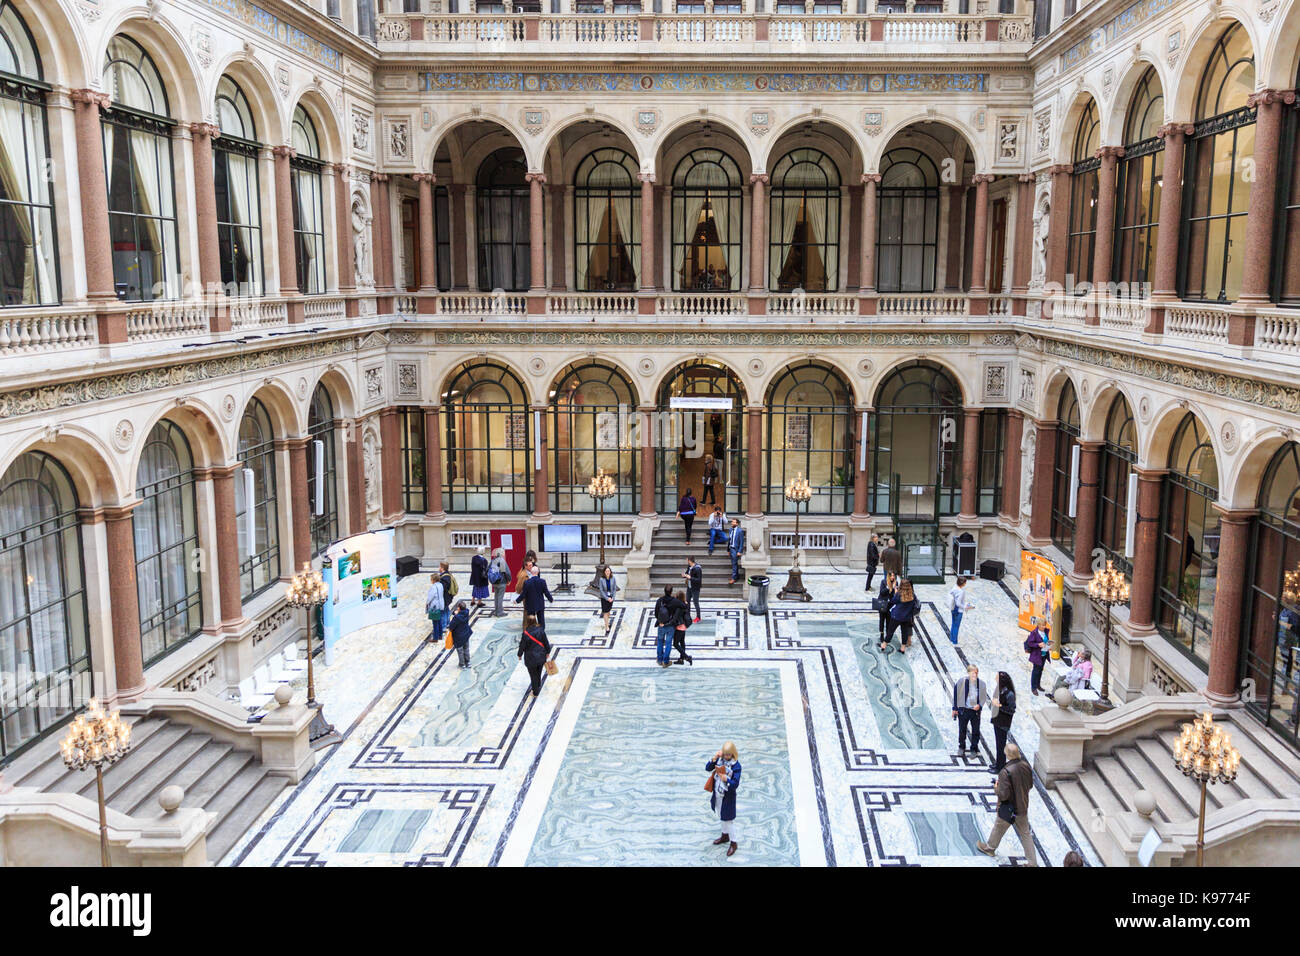 The Durbar Court at the former India Office, British Foreign and Commonwealth Office, Westminster, London, England, Stock Photo